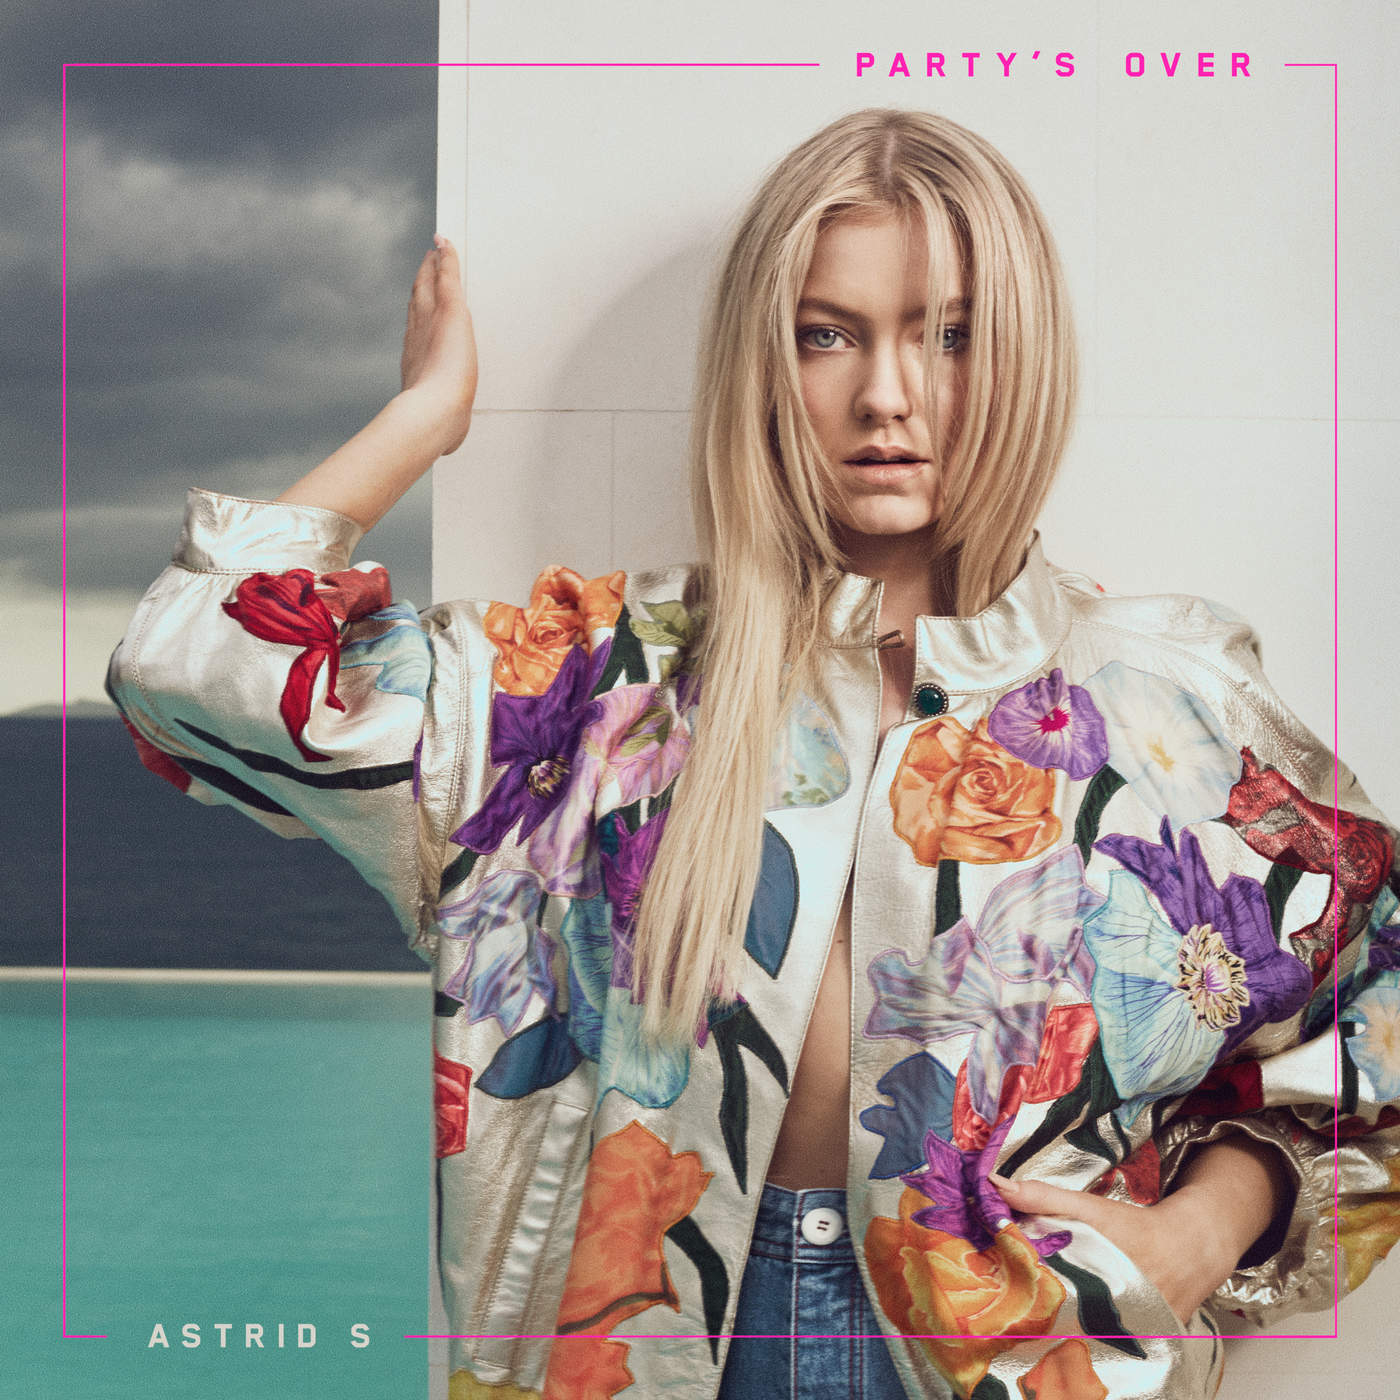 Astrid S - Party's Over - Single Cover